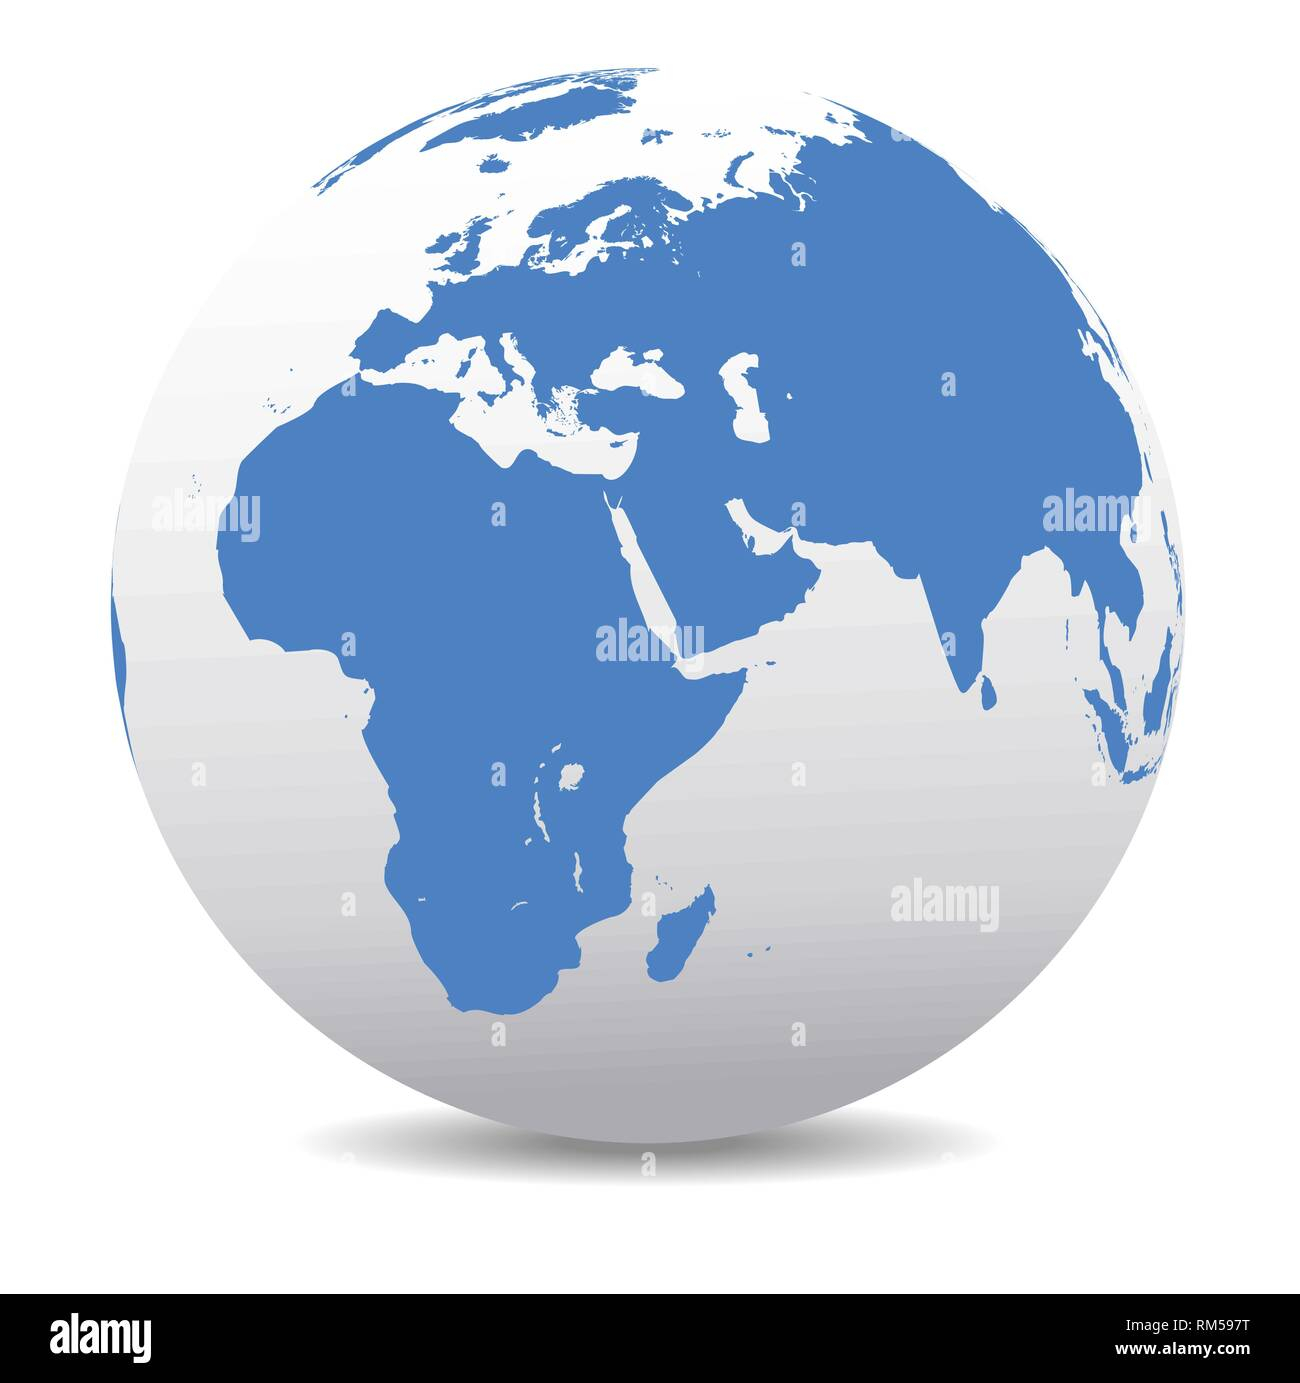 Africa, Middle East, Arabia and India Global World, Vector Map Icon of the world in Globe form - Stock Image